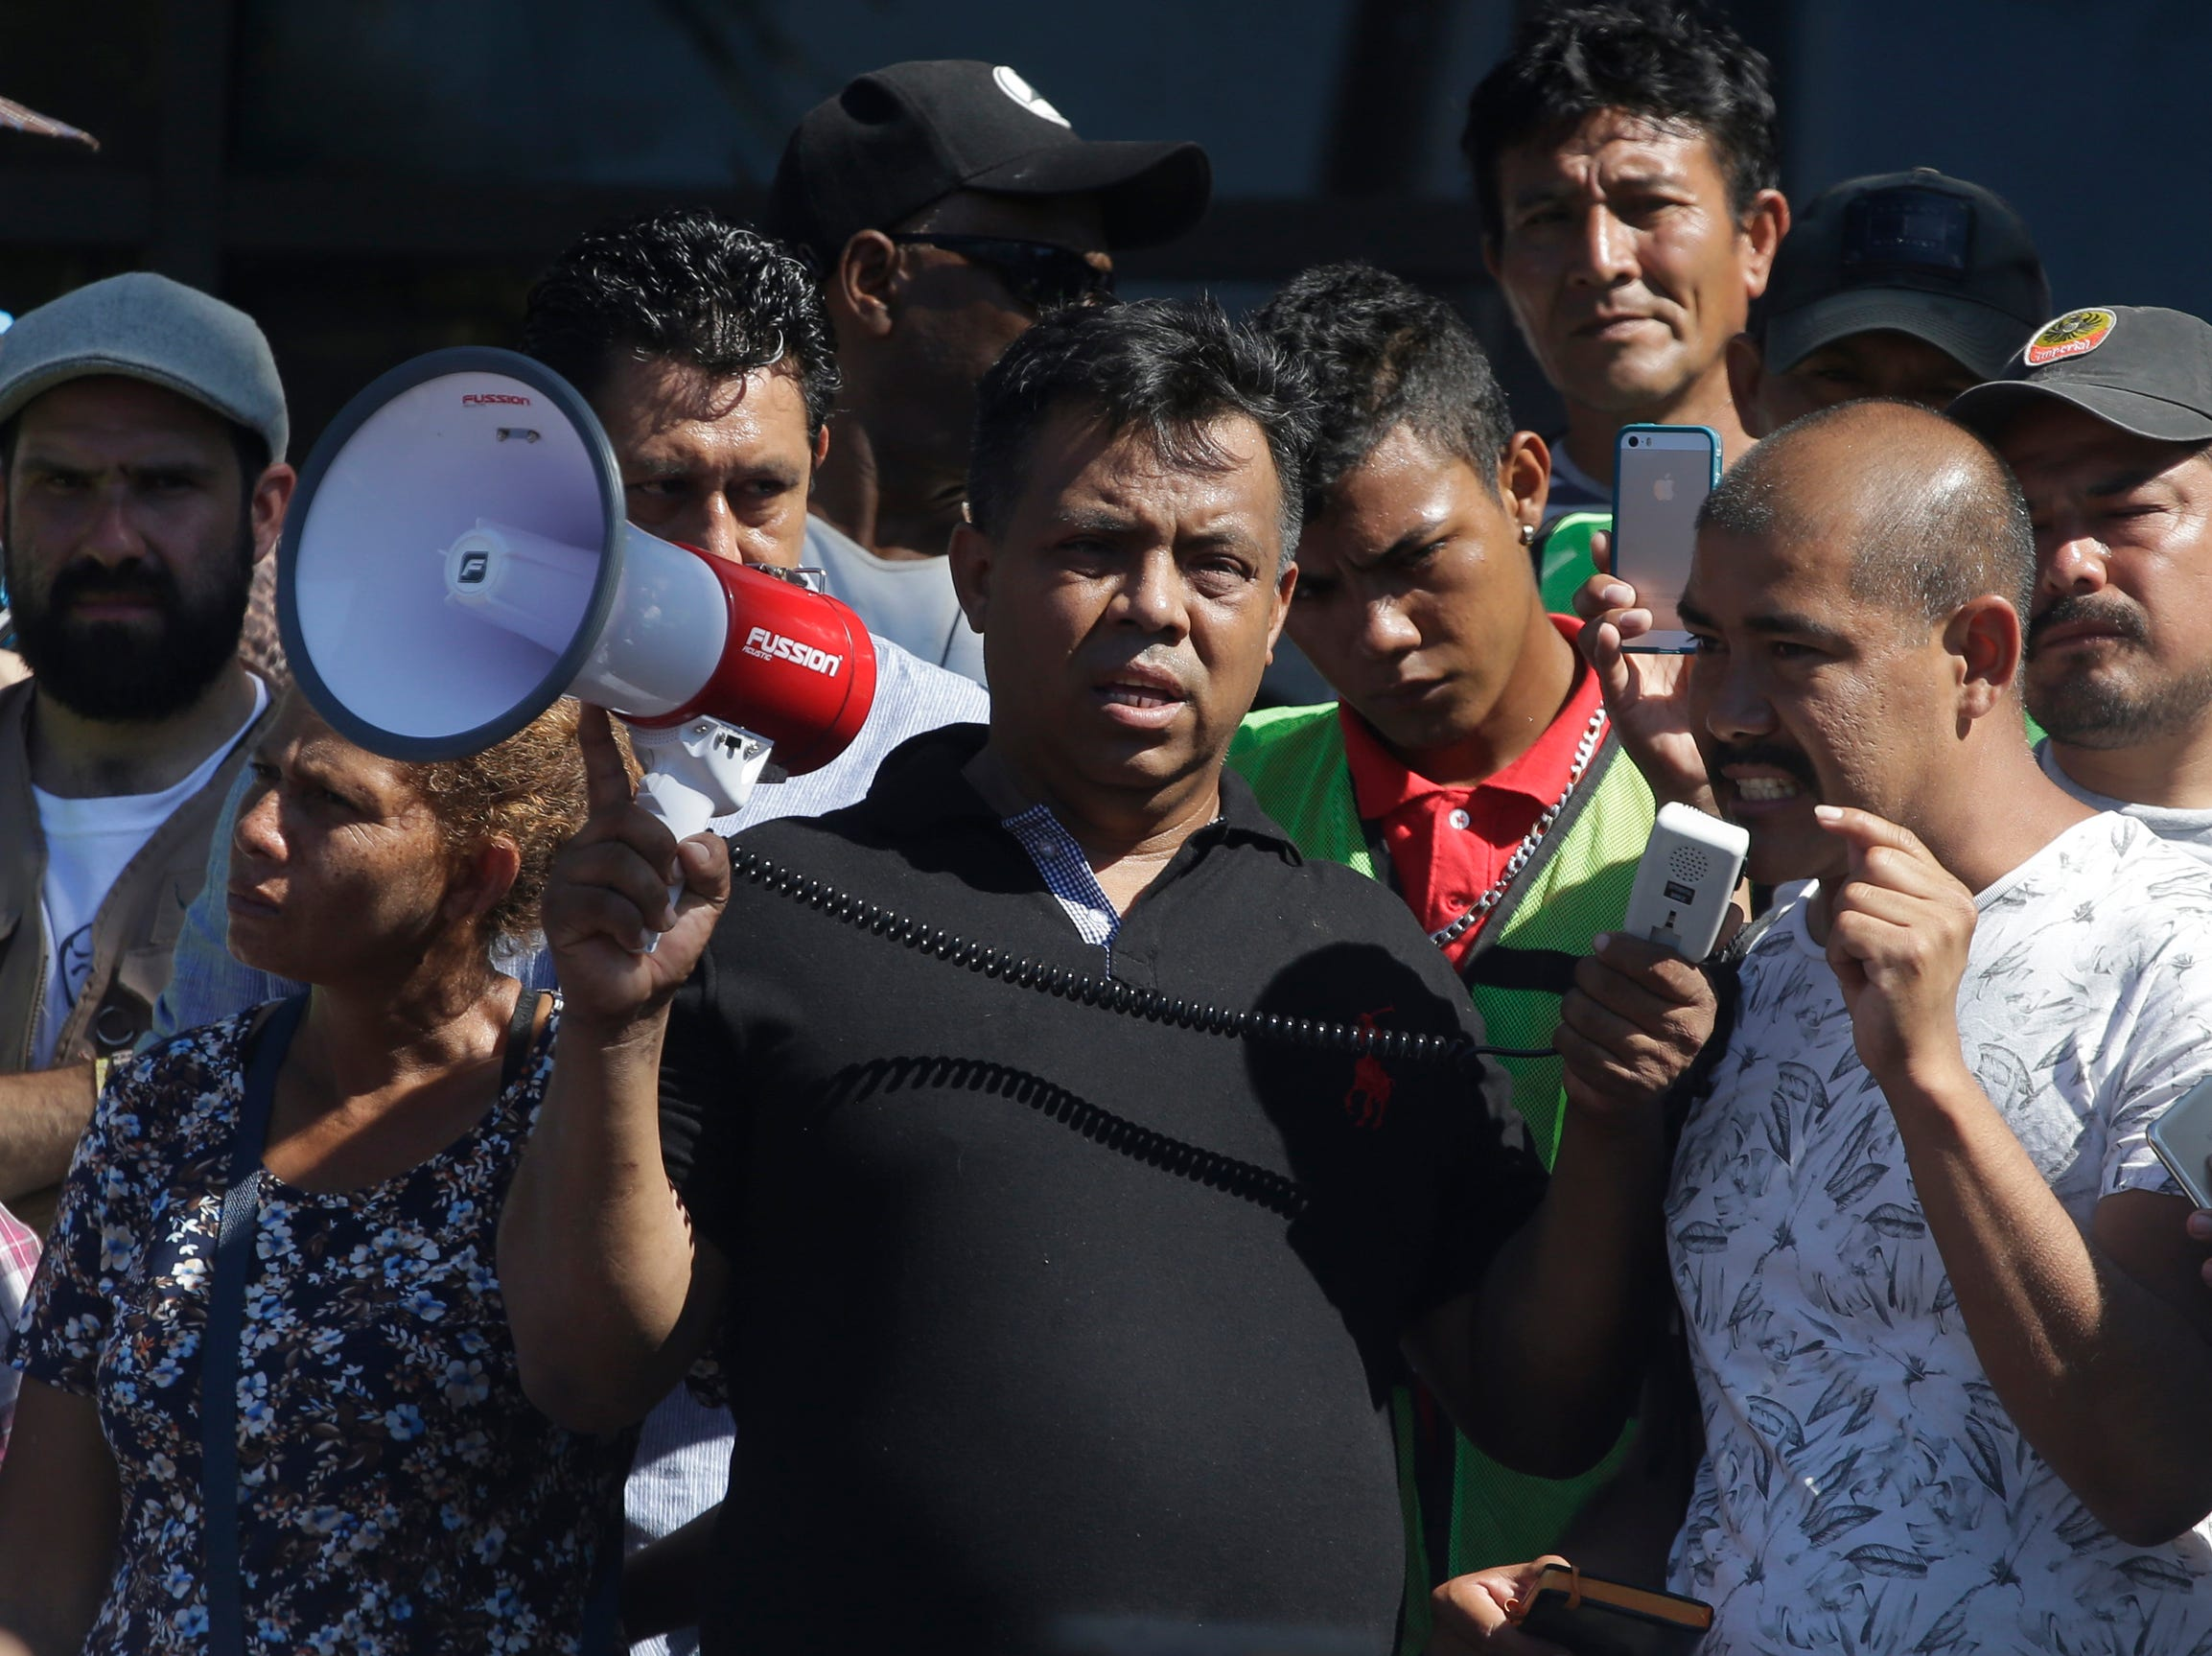 "Migrant activist Irineo Mujica, center, holds a megaphone as a Central American migrant speak to reporters during a press conference in Tapachula, Mexico, Monday, Oct. 22, 2018. ""It is a shame that a president so powerful uses this caravan for political ends,"" said Mujica of the group Pueblo Sin Fronteras or People Without Borders, which works to provide humanitarian aid to migrants."